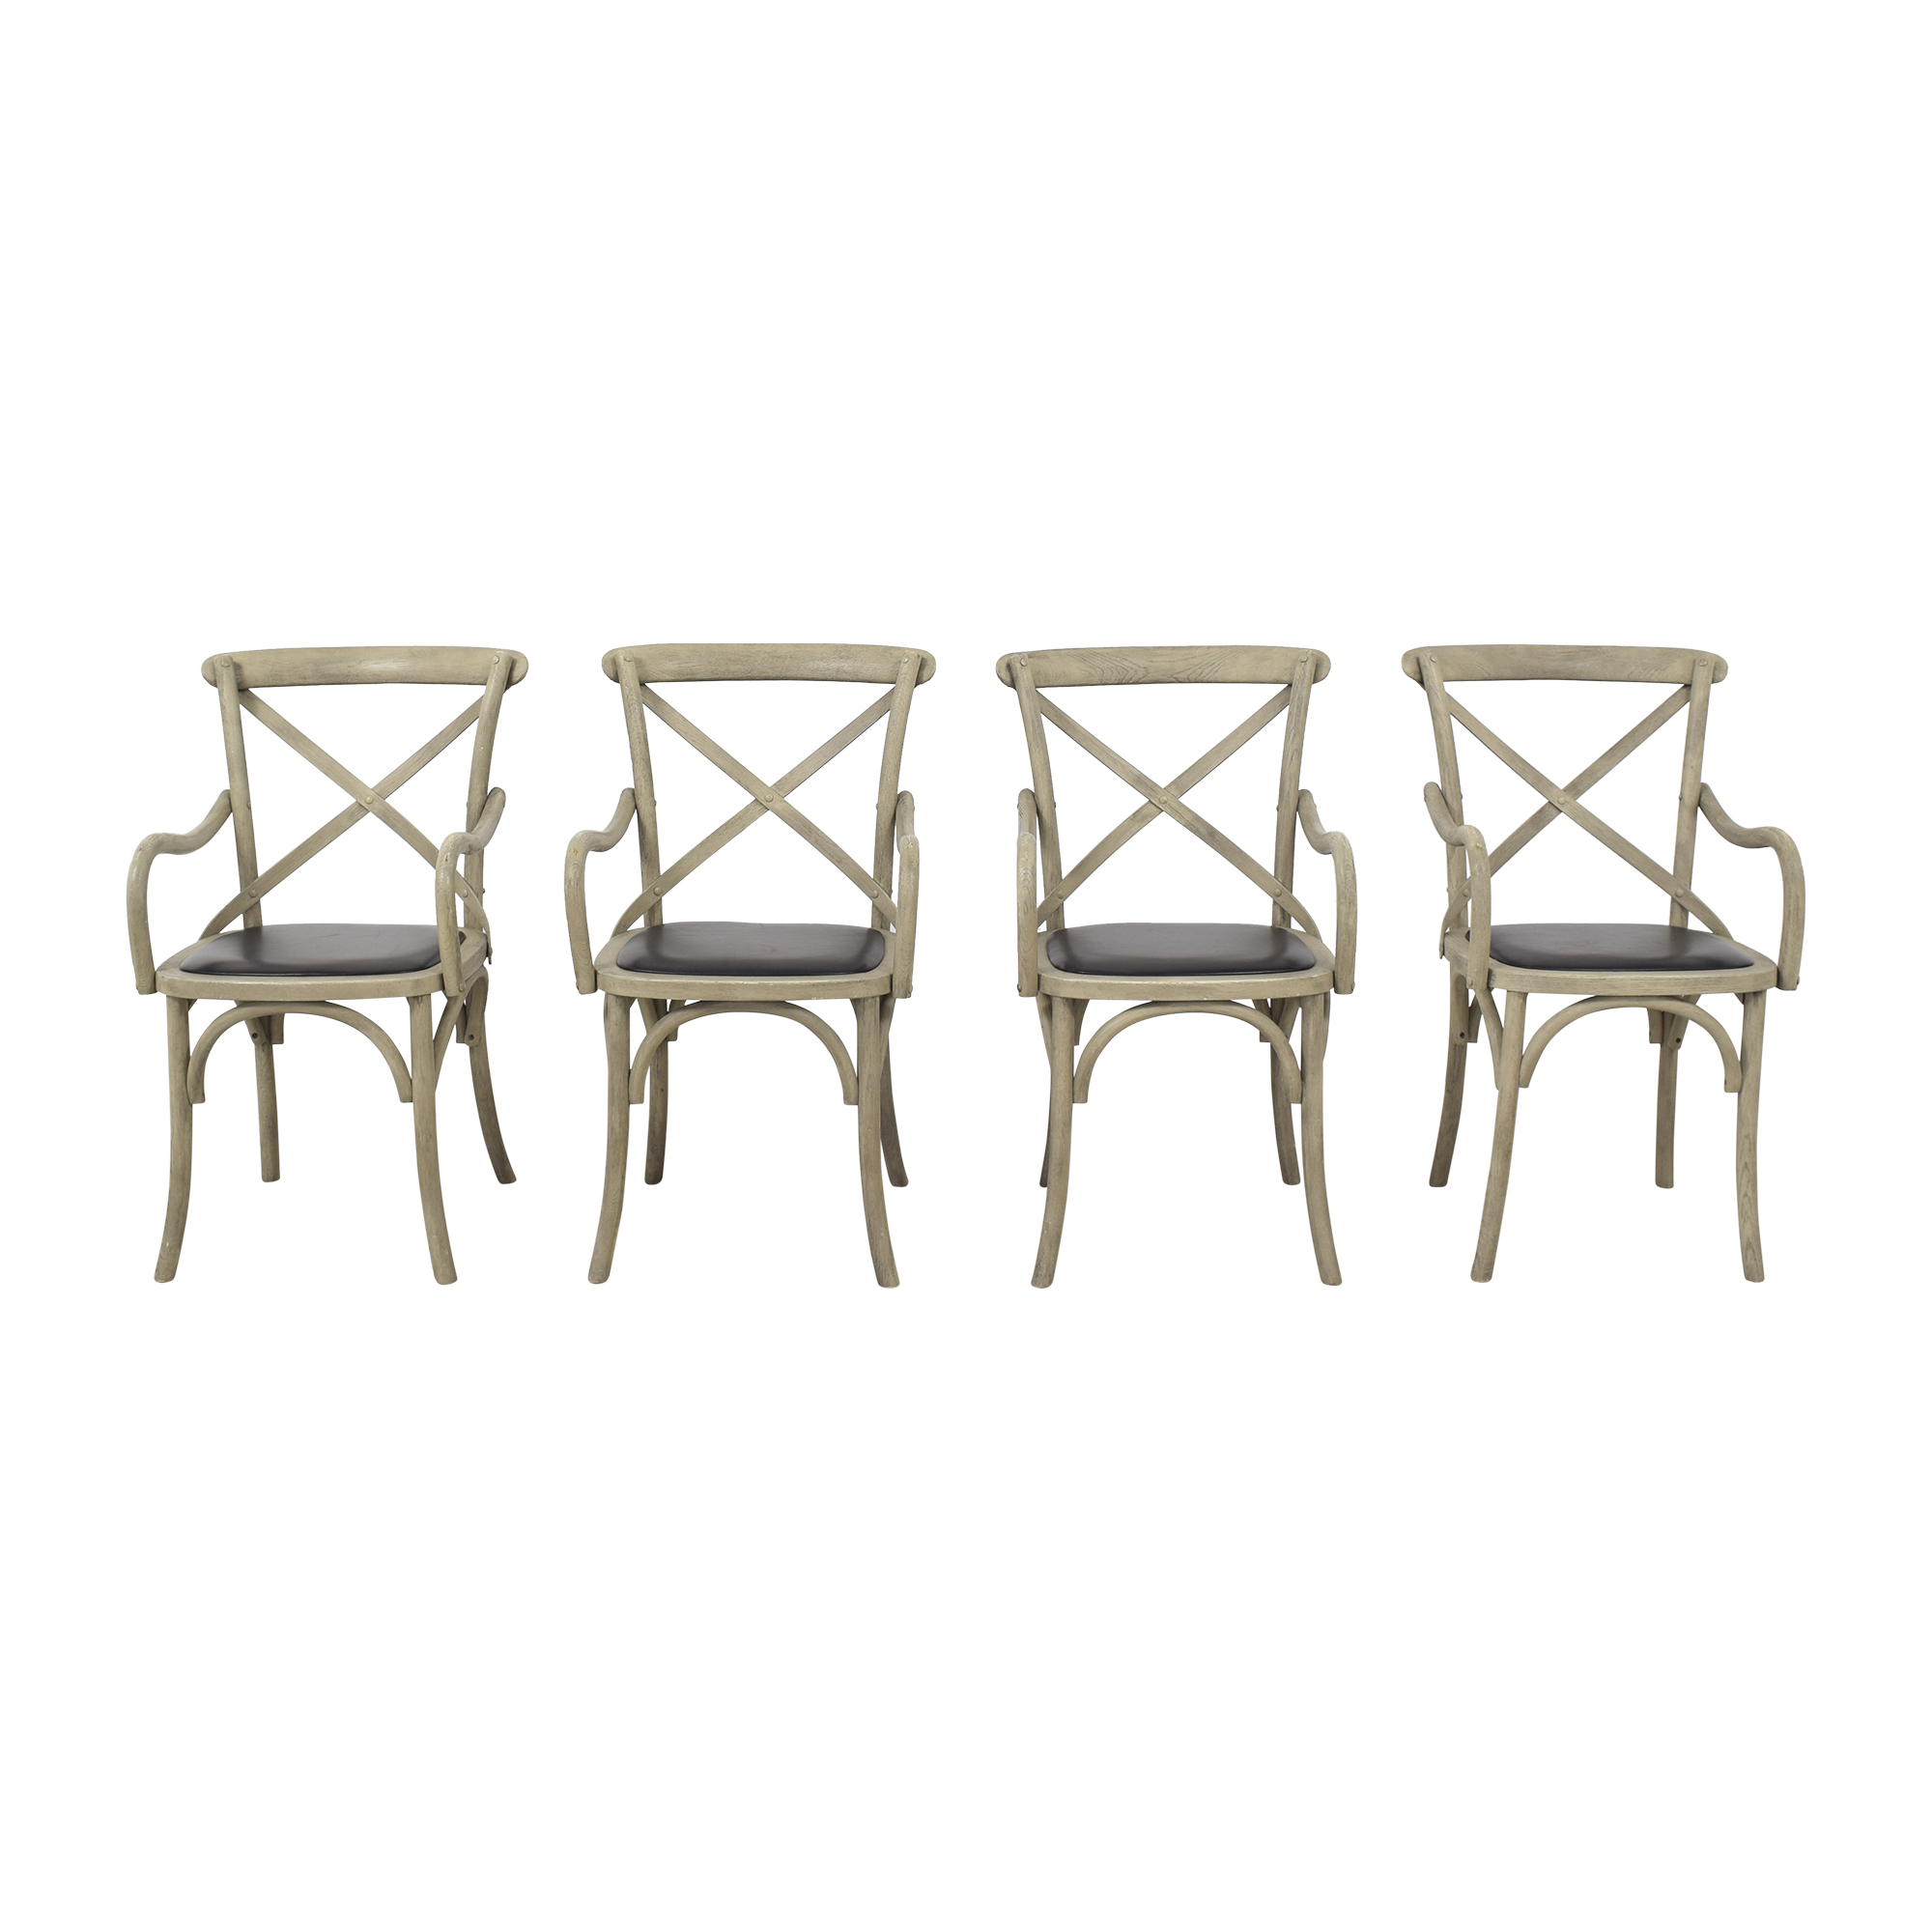 Restoration Hardware Restoration Hardware Madeleine Dining Armchairs used